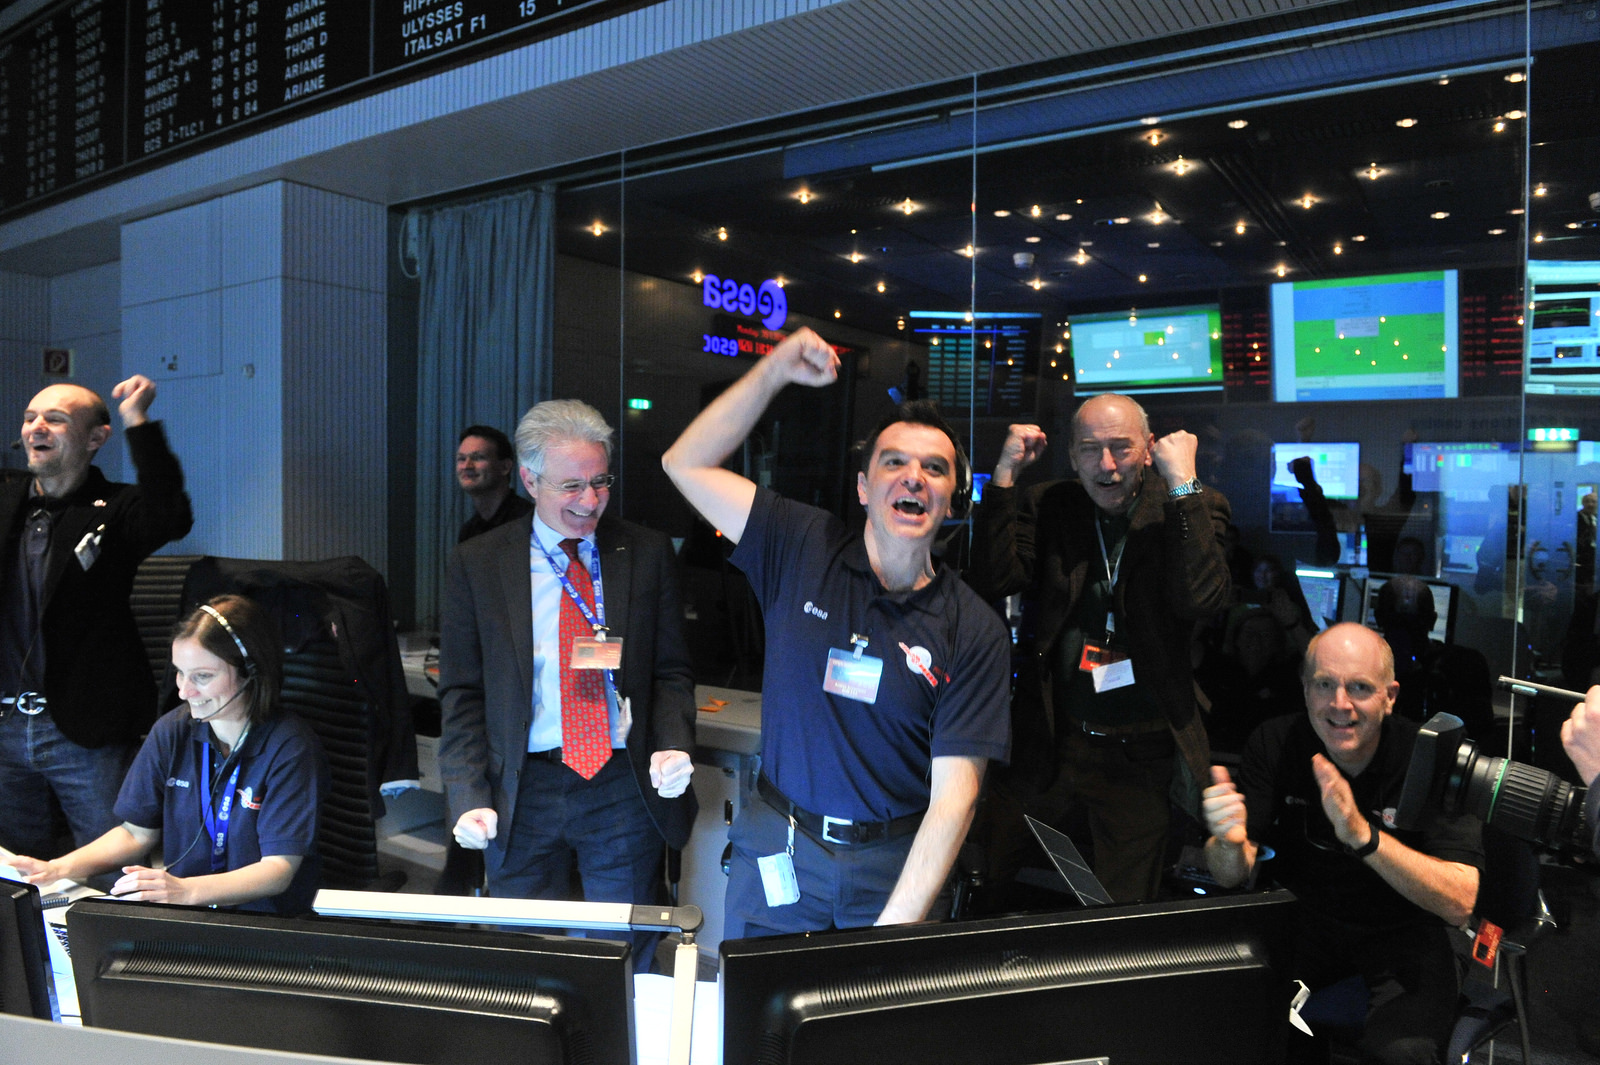 rosetta-comet-spacecraft-wakeup-success